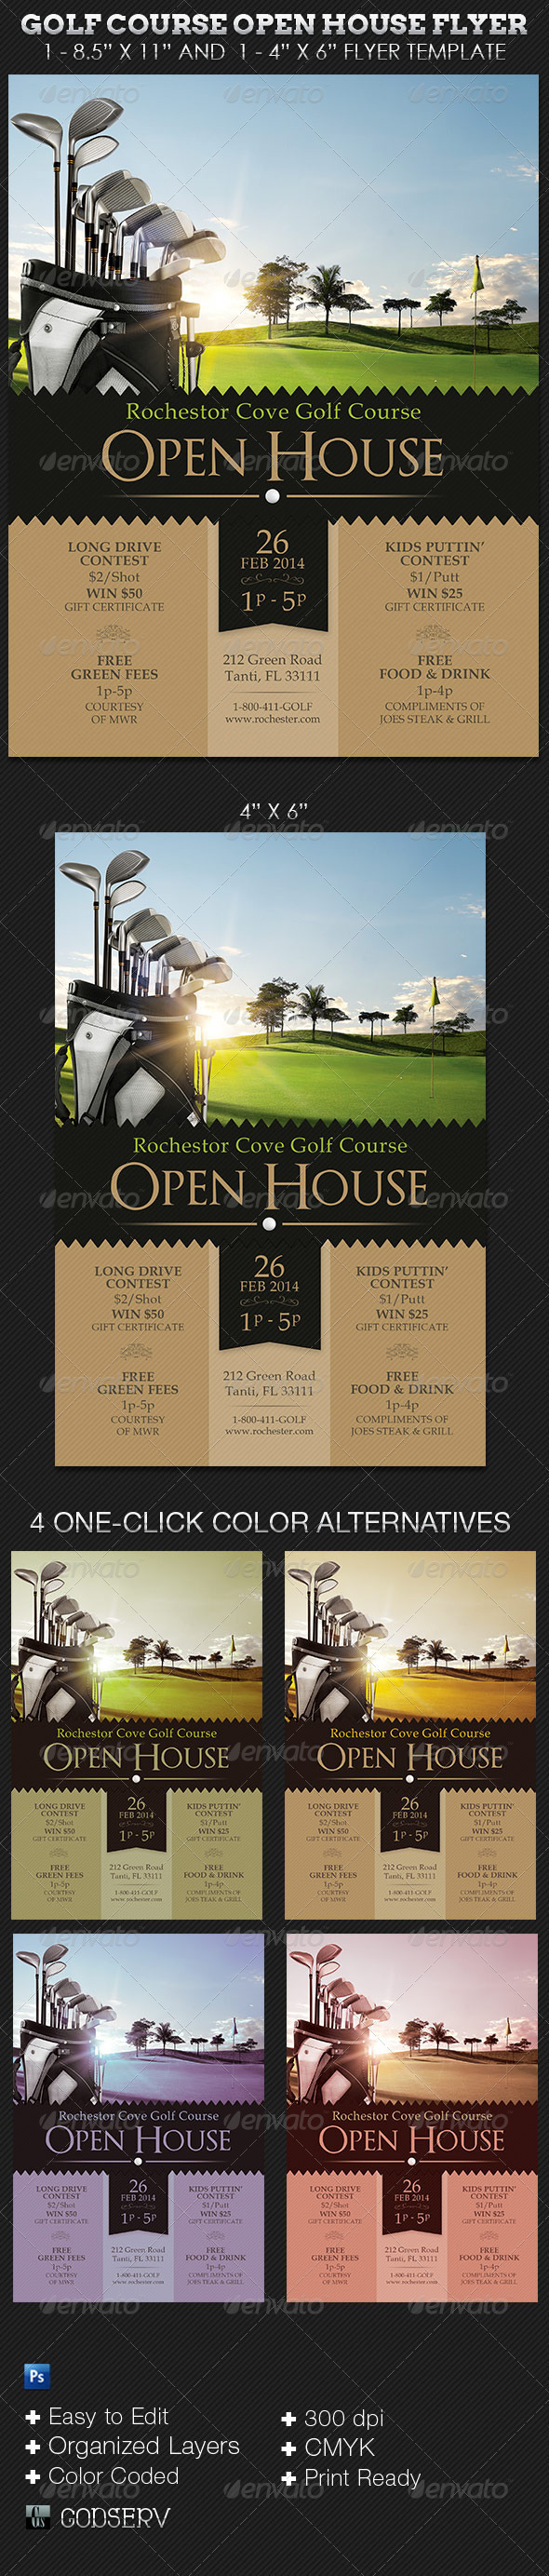 Golf Course Open House Flyer Templates on Behance